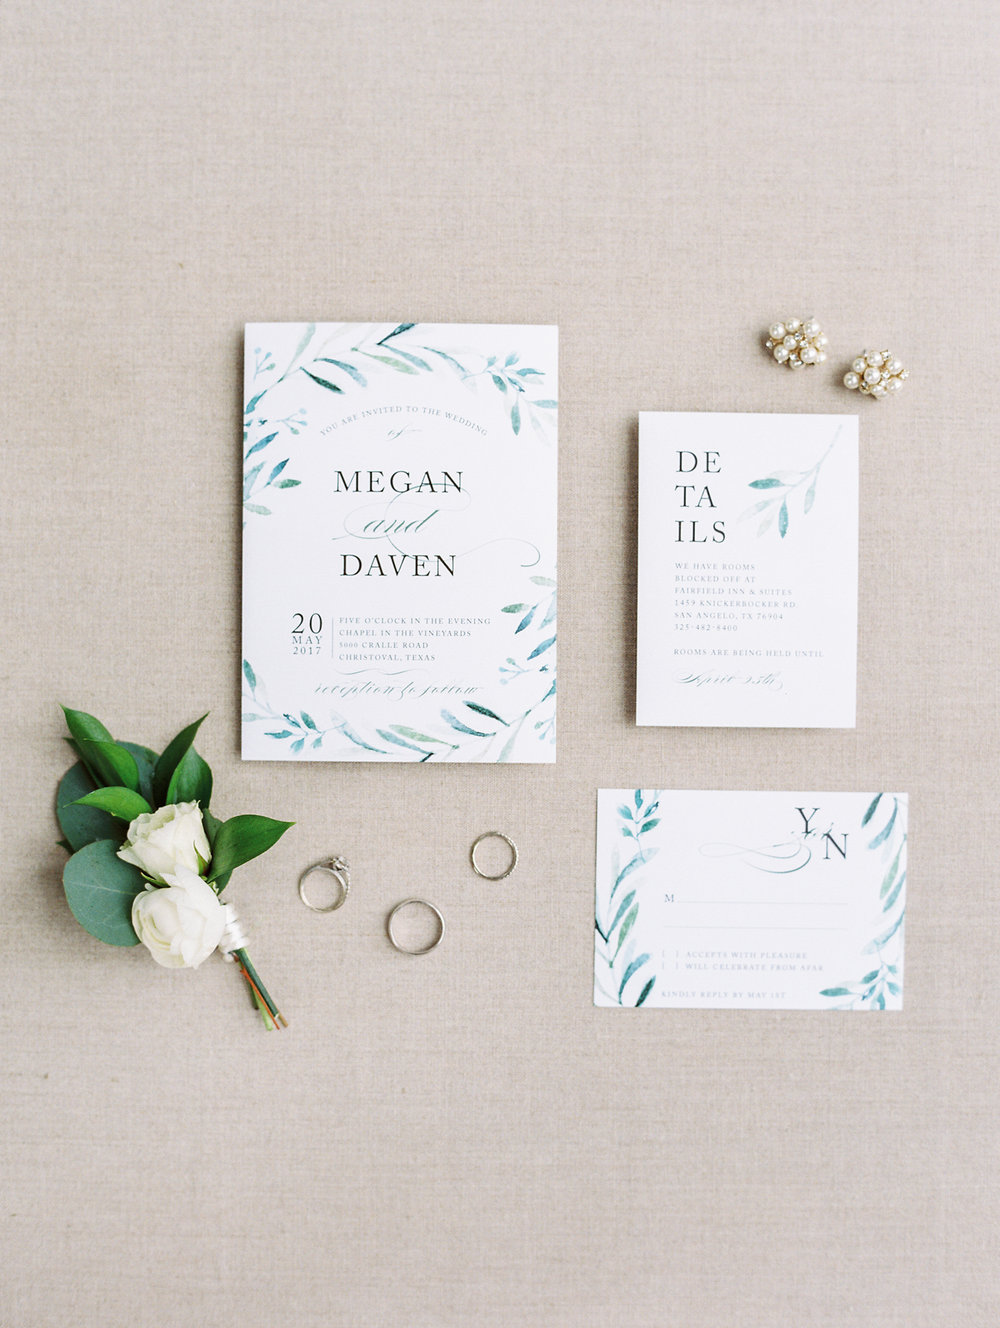 Elegant Spring Vineyard Wedding | Film Wedding Photographer | Austin Wedding Photographer | Natural Wedding Invitation | Britni Dean Photography // britnidean.com